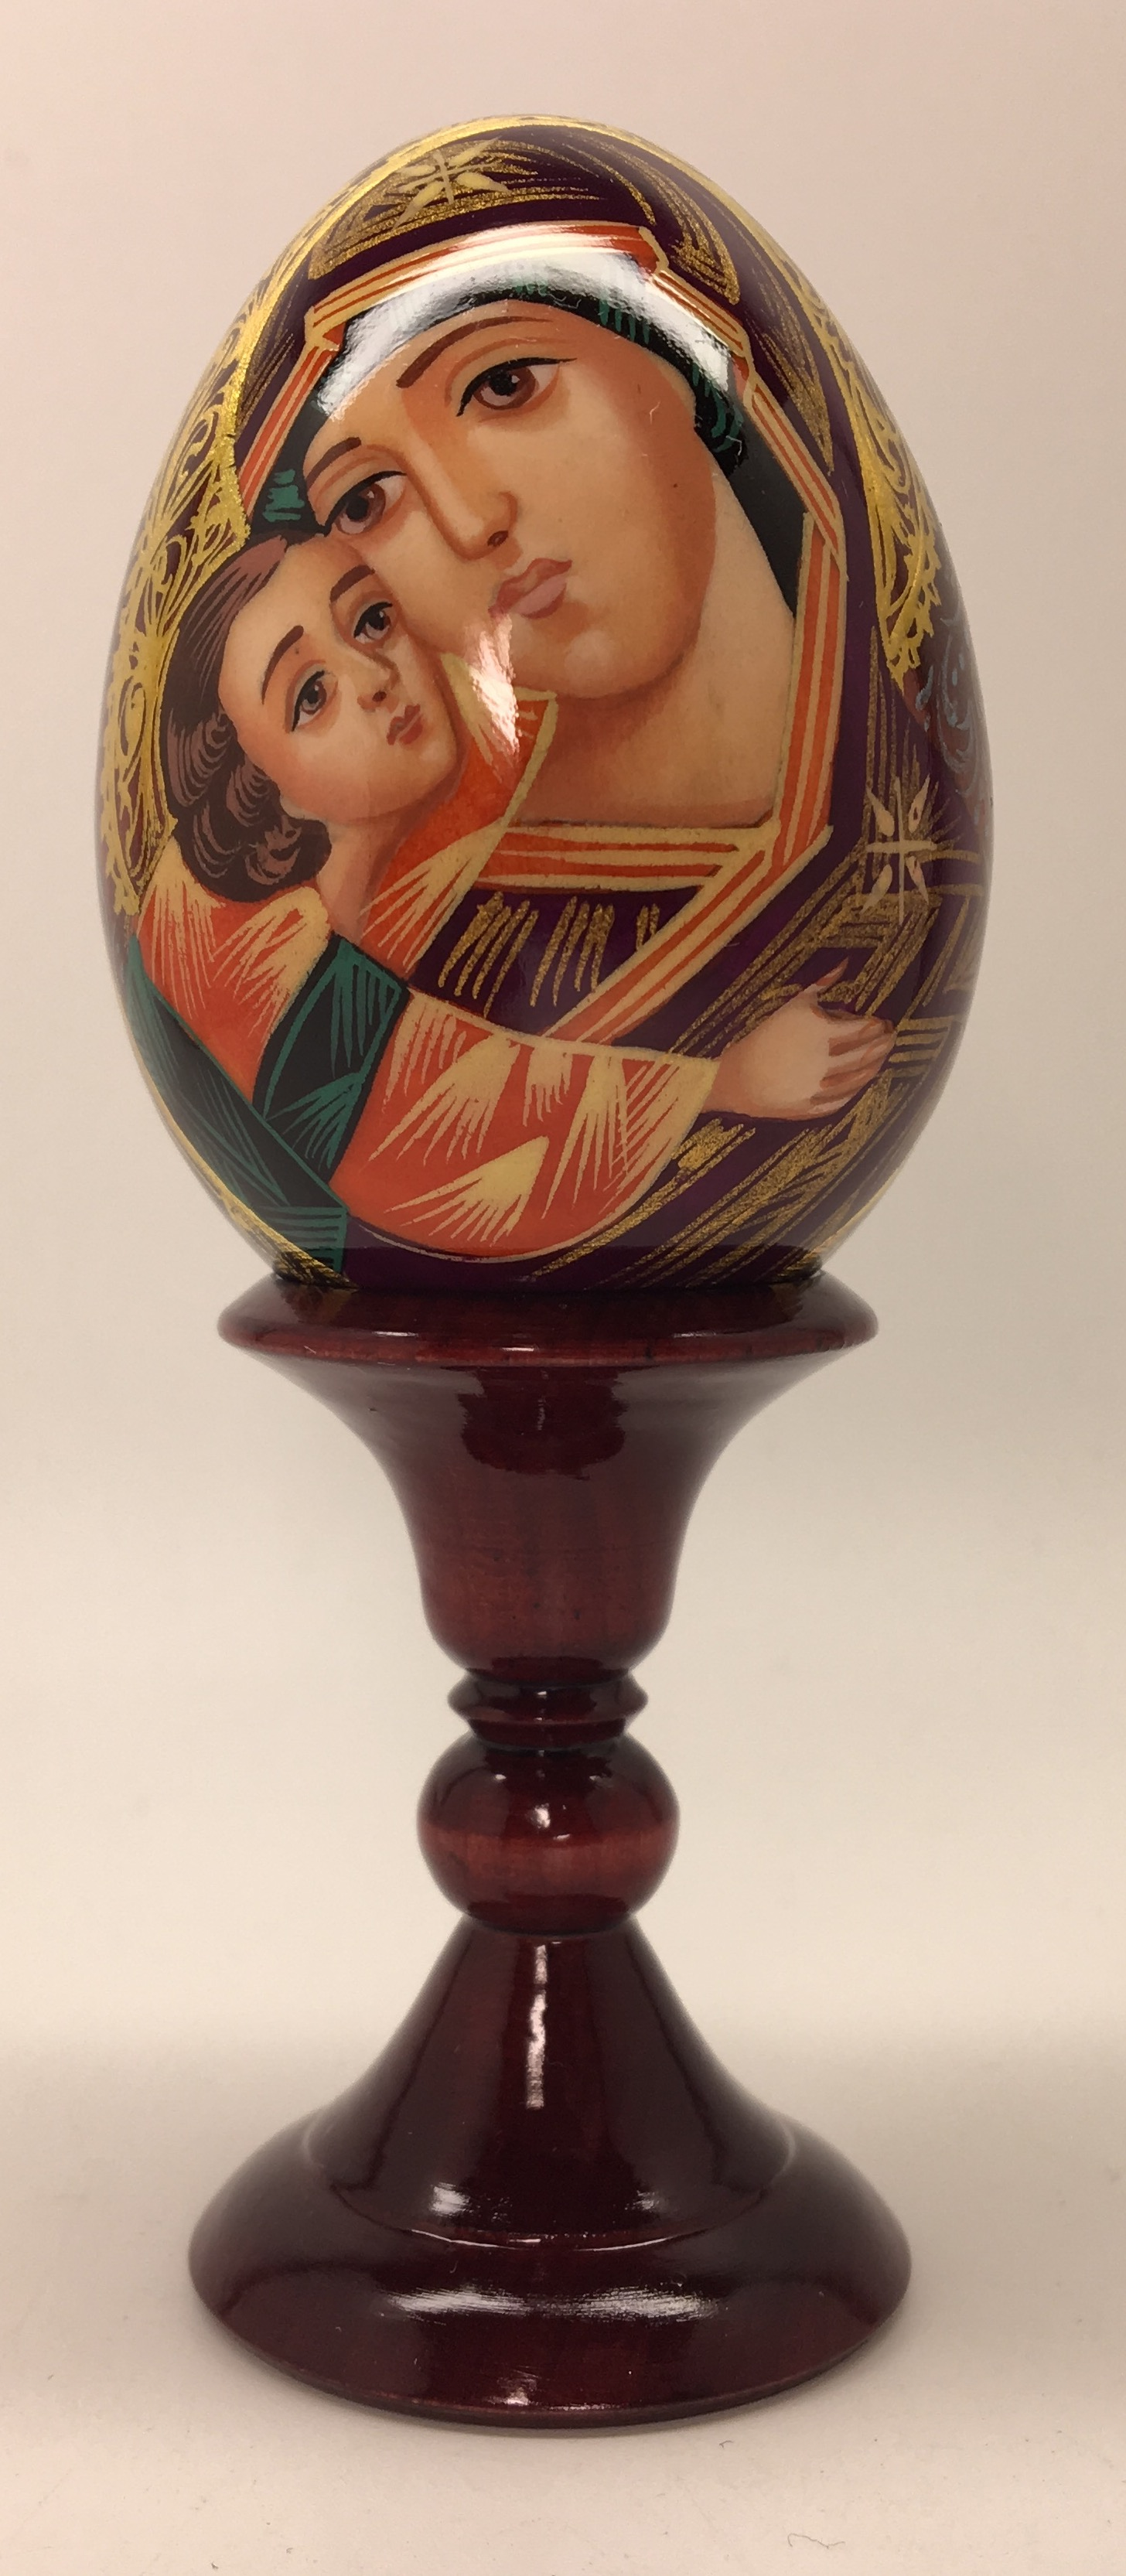 U Godmother hand painted on wooden egg (60mm) by Hamlet Crafts